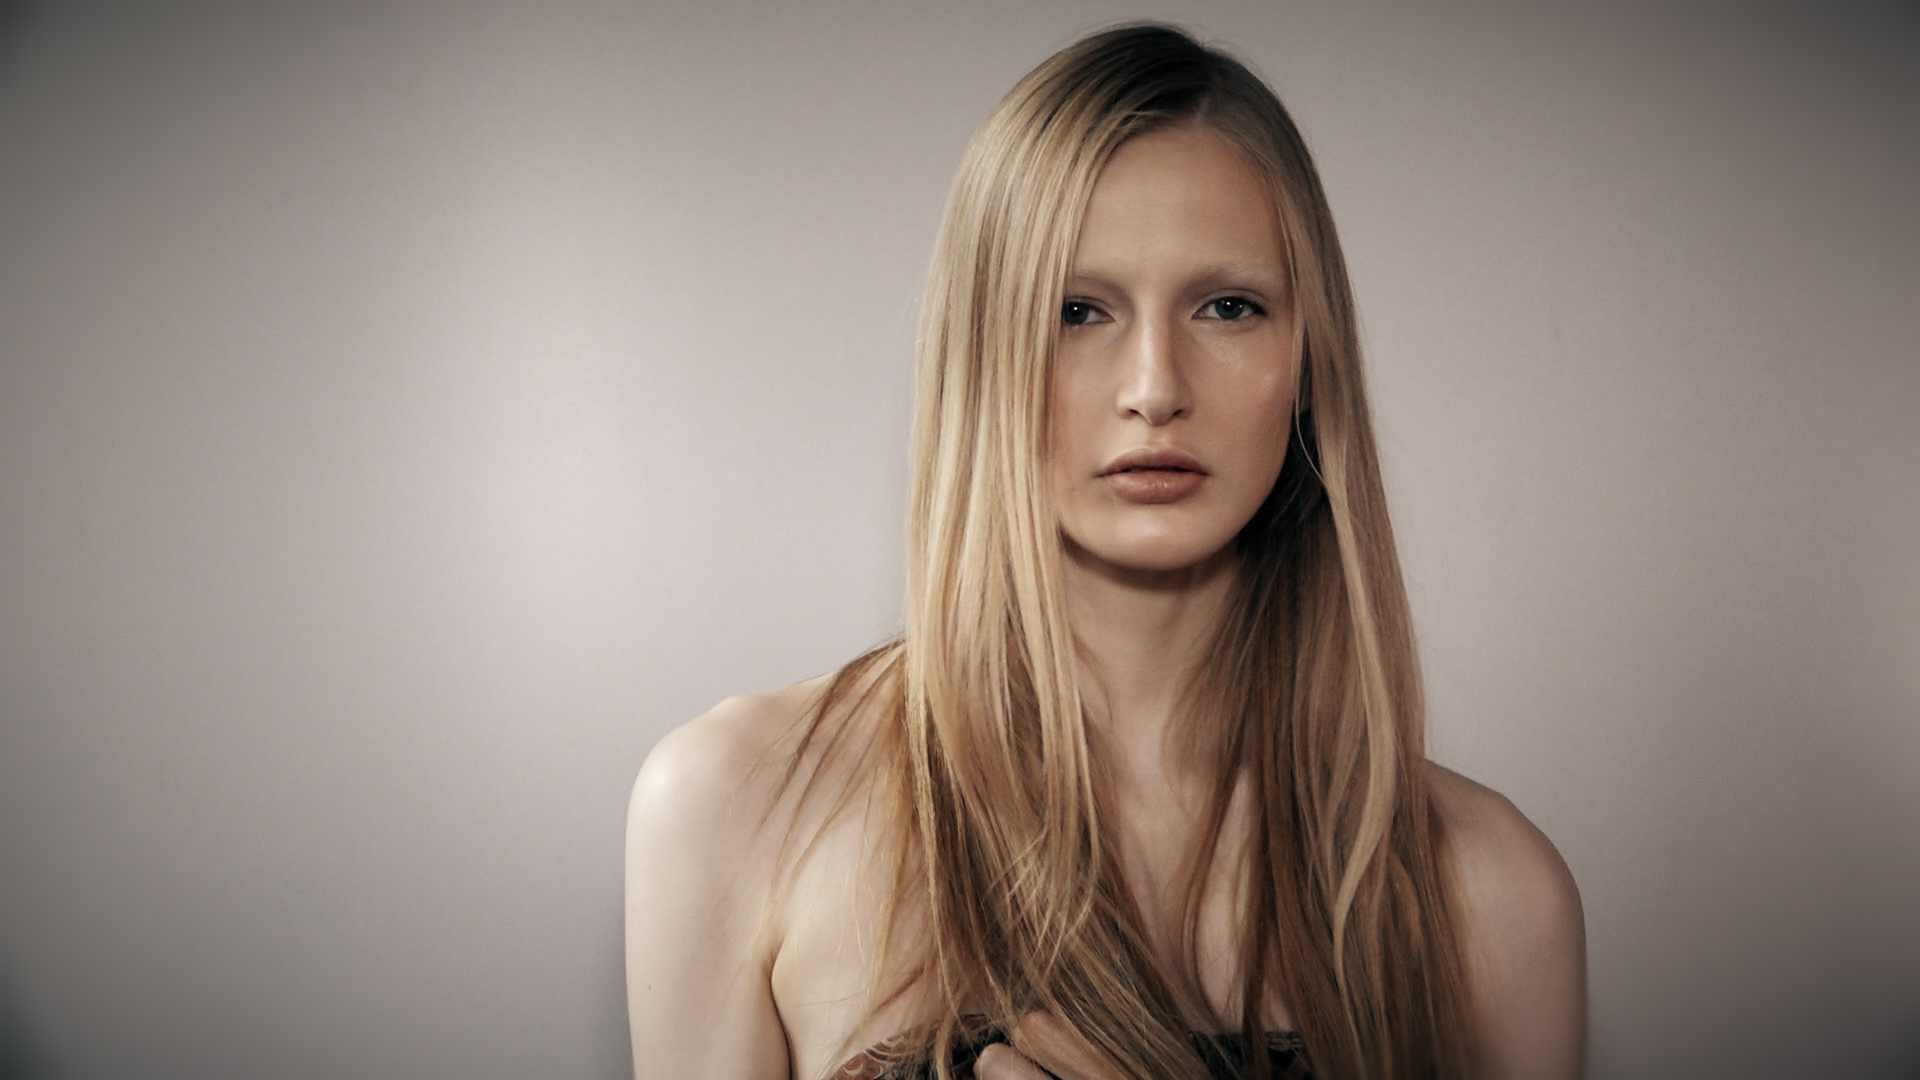 Leah Rodl. A beautiful model steals the show backstage at Etro